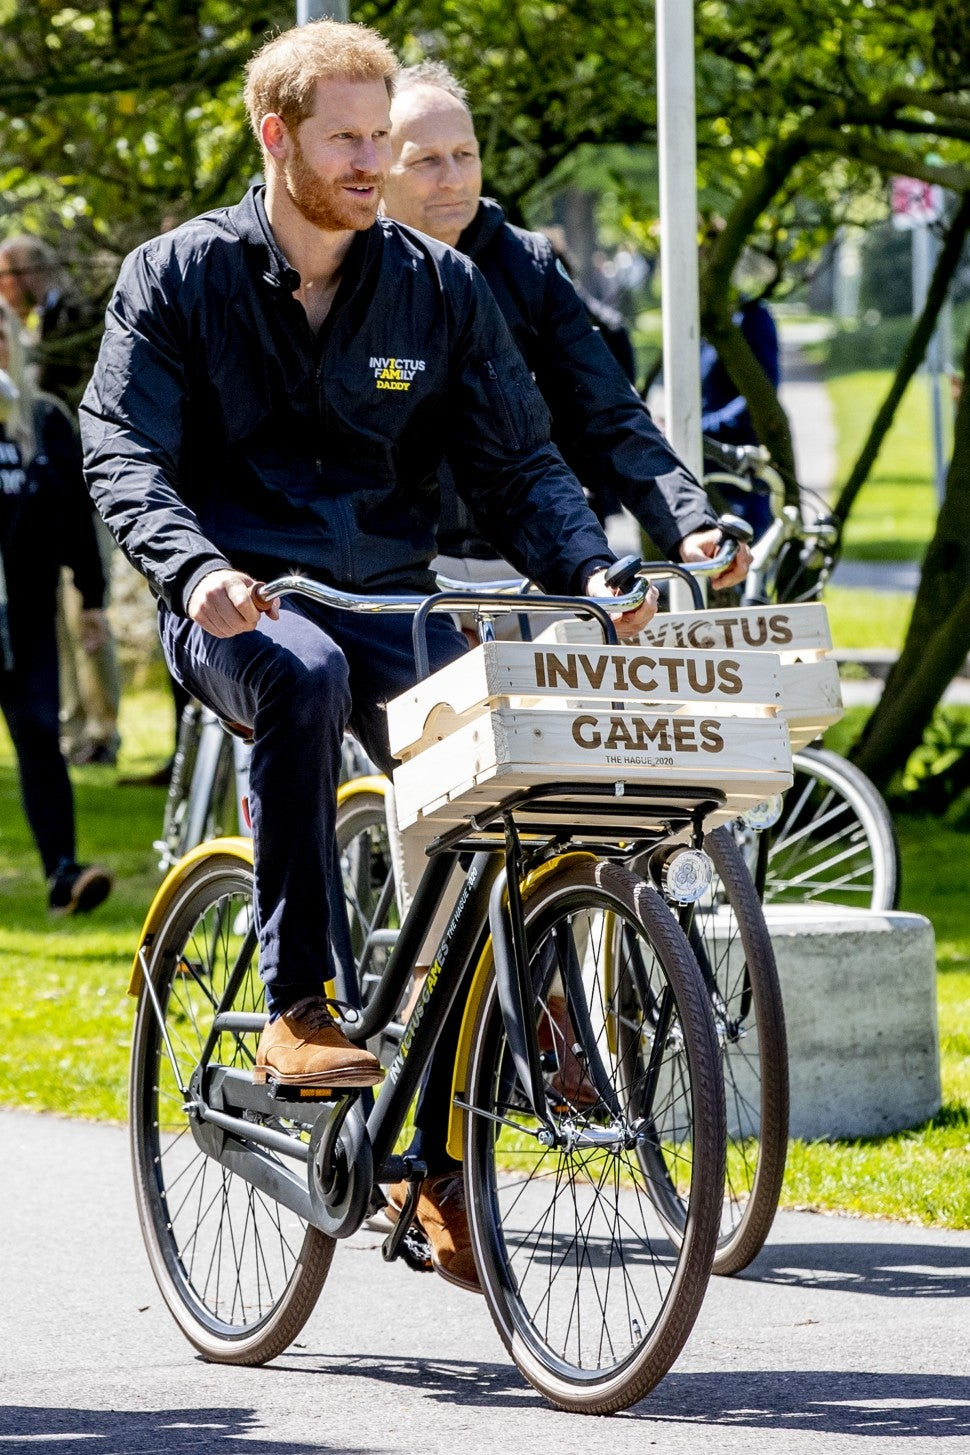 Prince Harry, Duke of Sussex rides a bicycle during the launch of the Invictus Games on May 9, 2019 in The Hague, Netherlands.